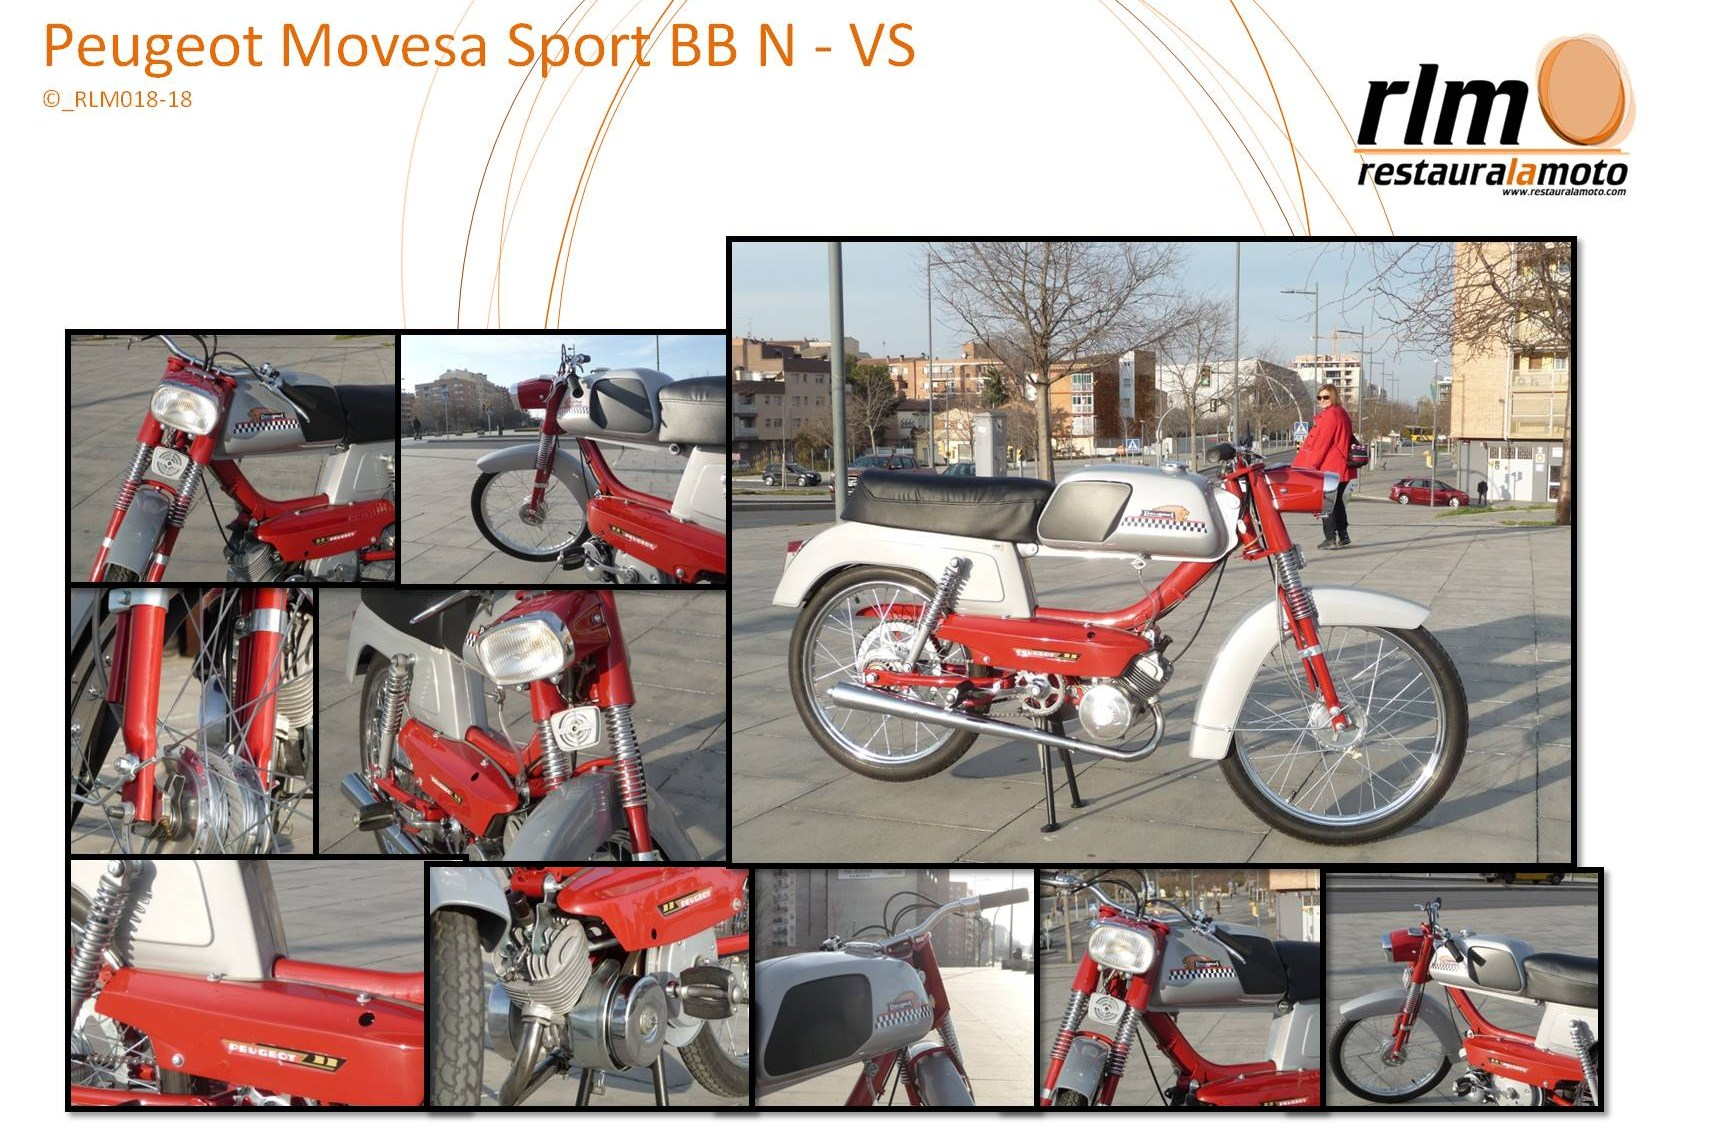 Peugeot Movesa BB N VS